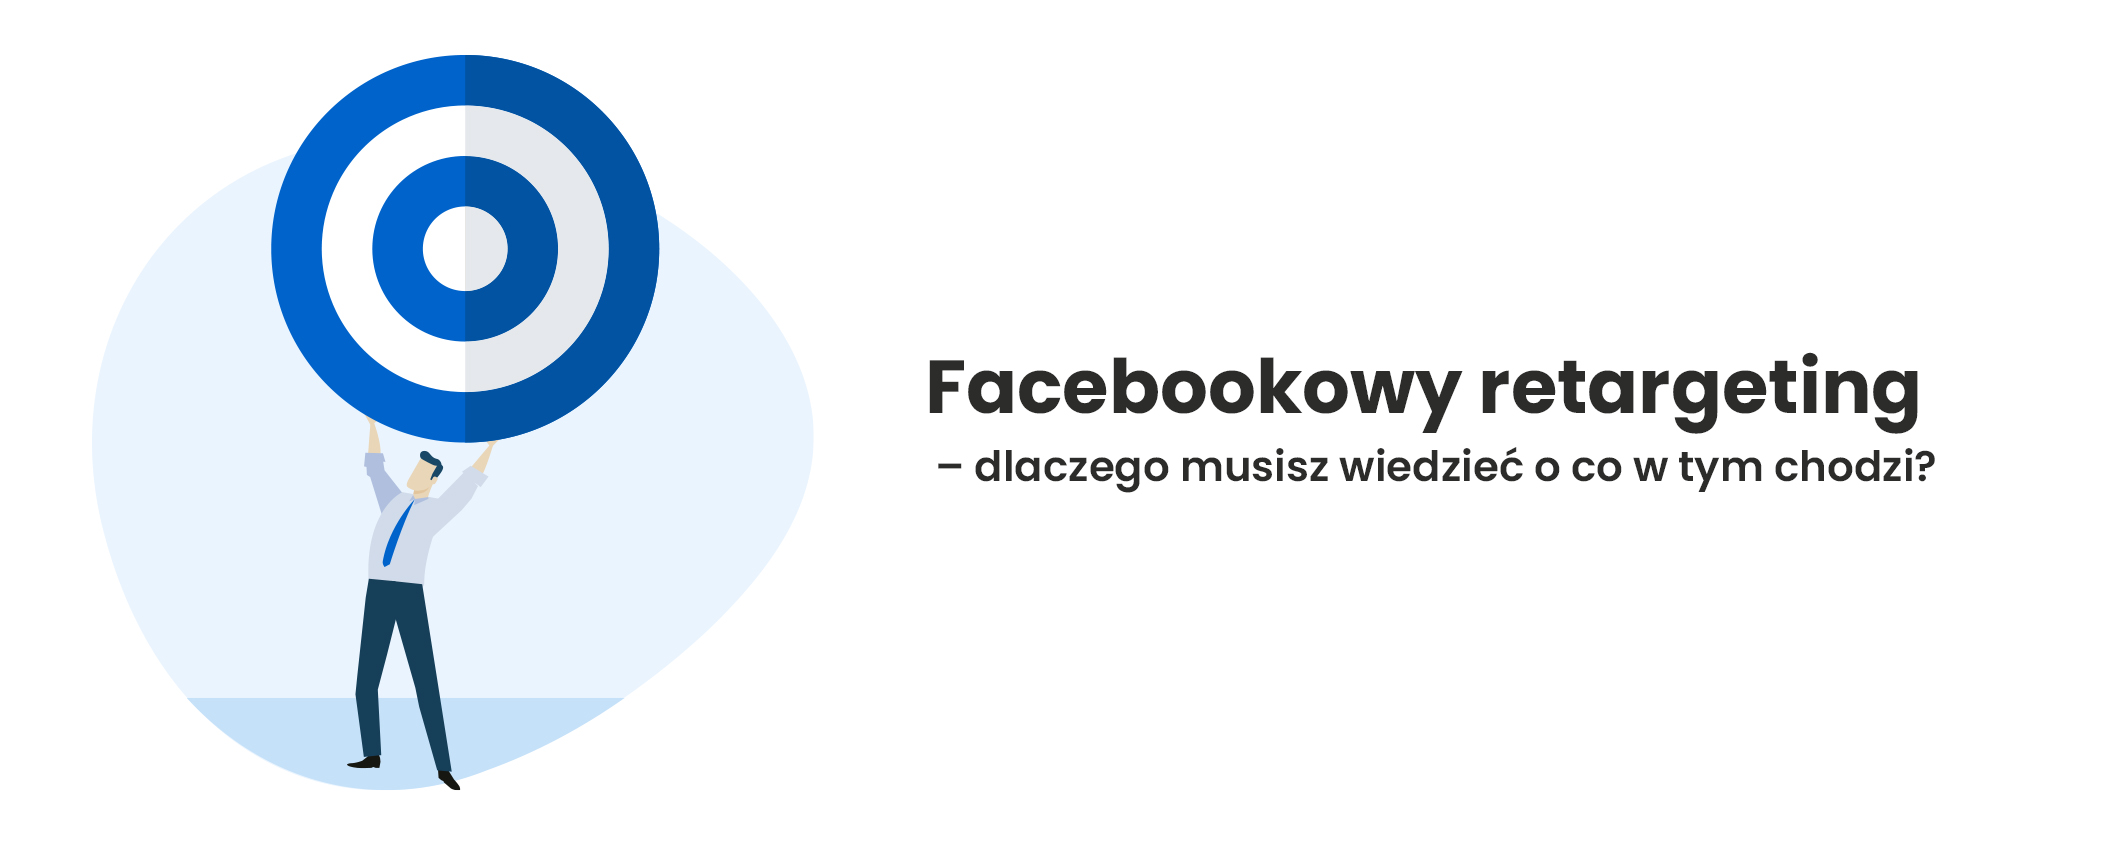 facebookowy retargeting